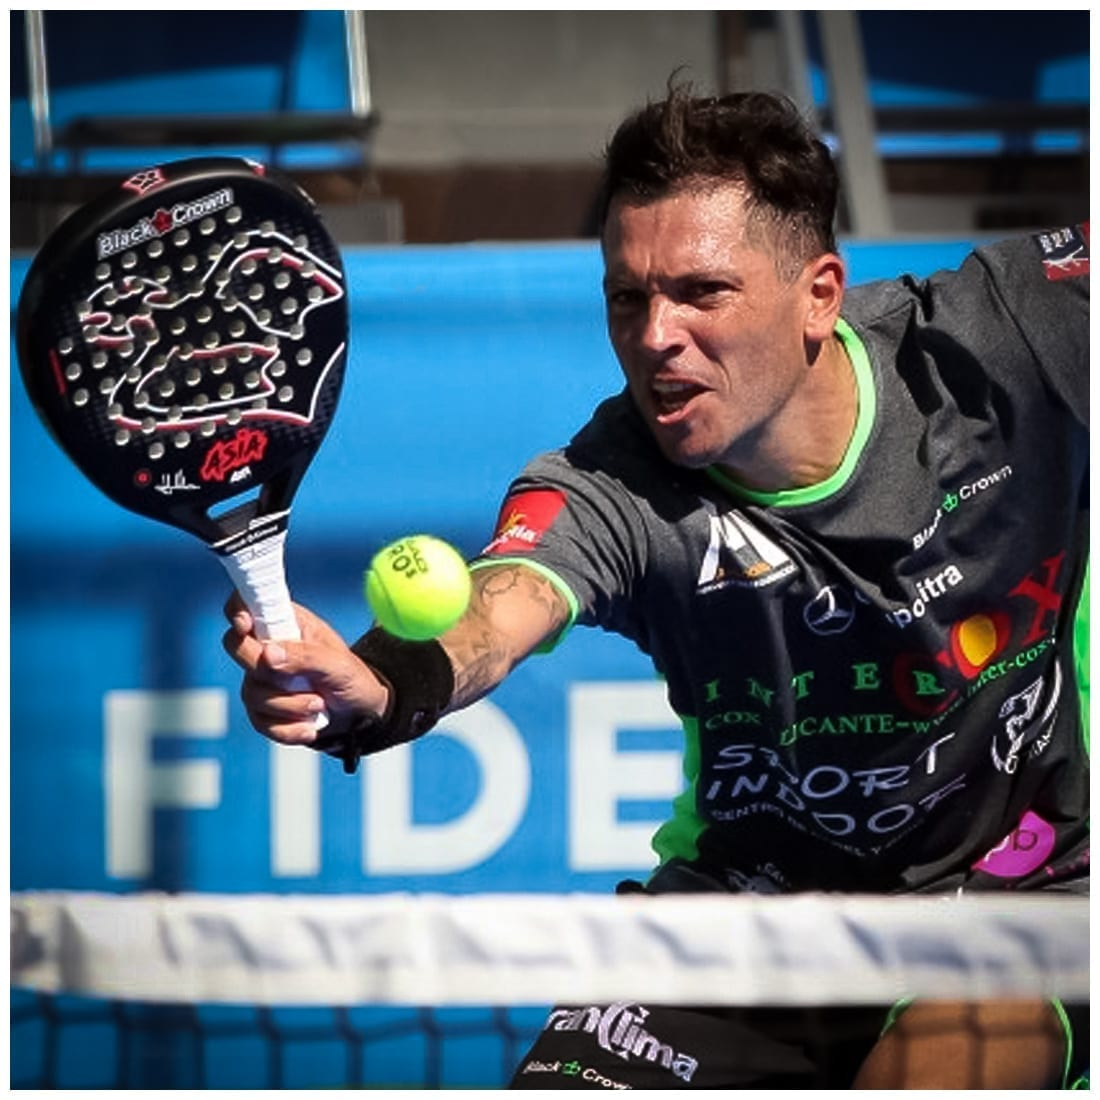 Men Padel Championship, World Padel Tour Player (WPT). I Love Padel, Your Official Padel Shop, Black Crown Asia Padel Racket